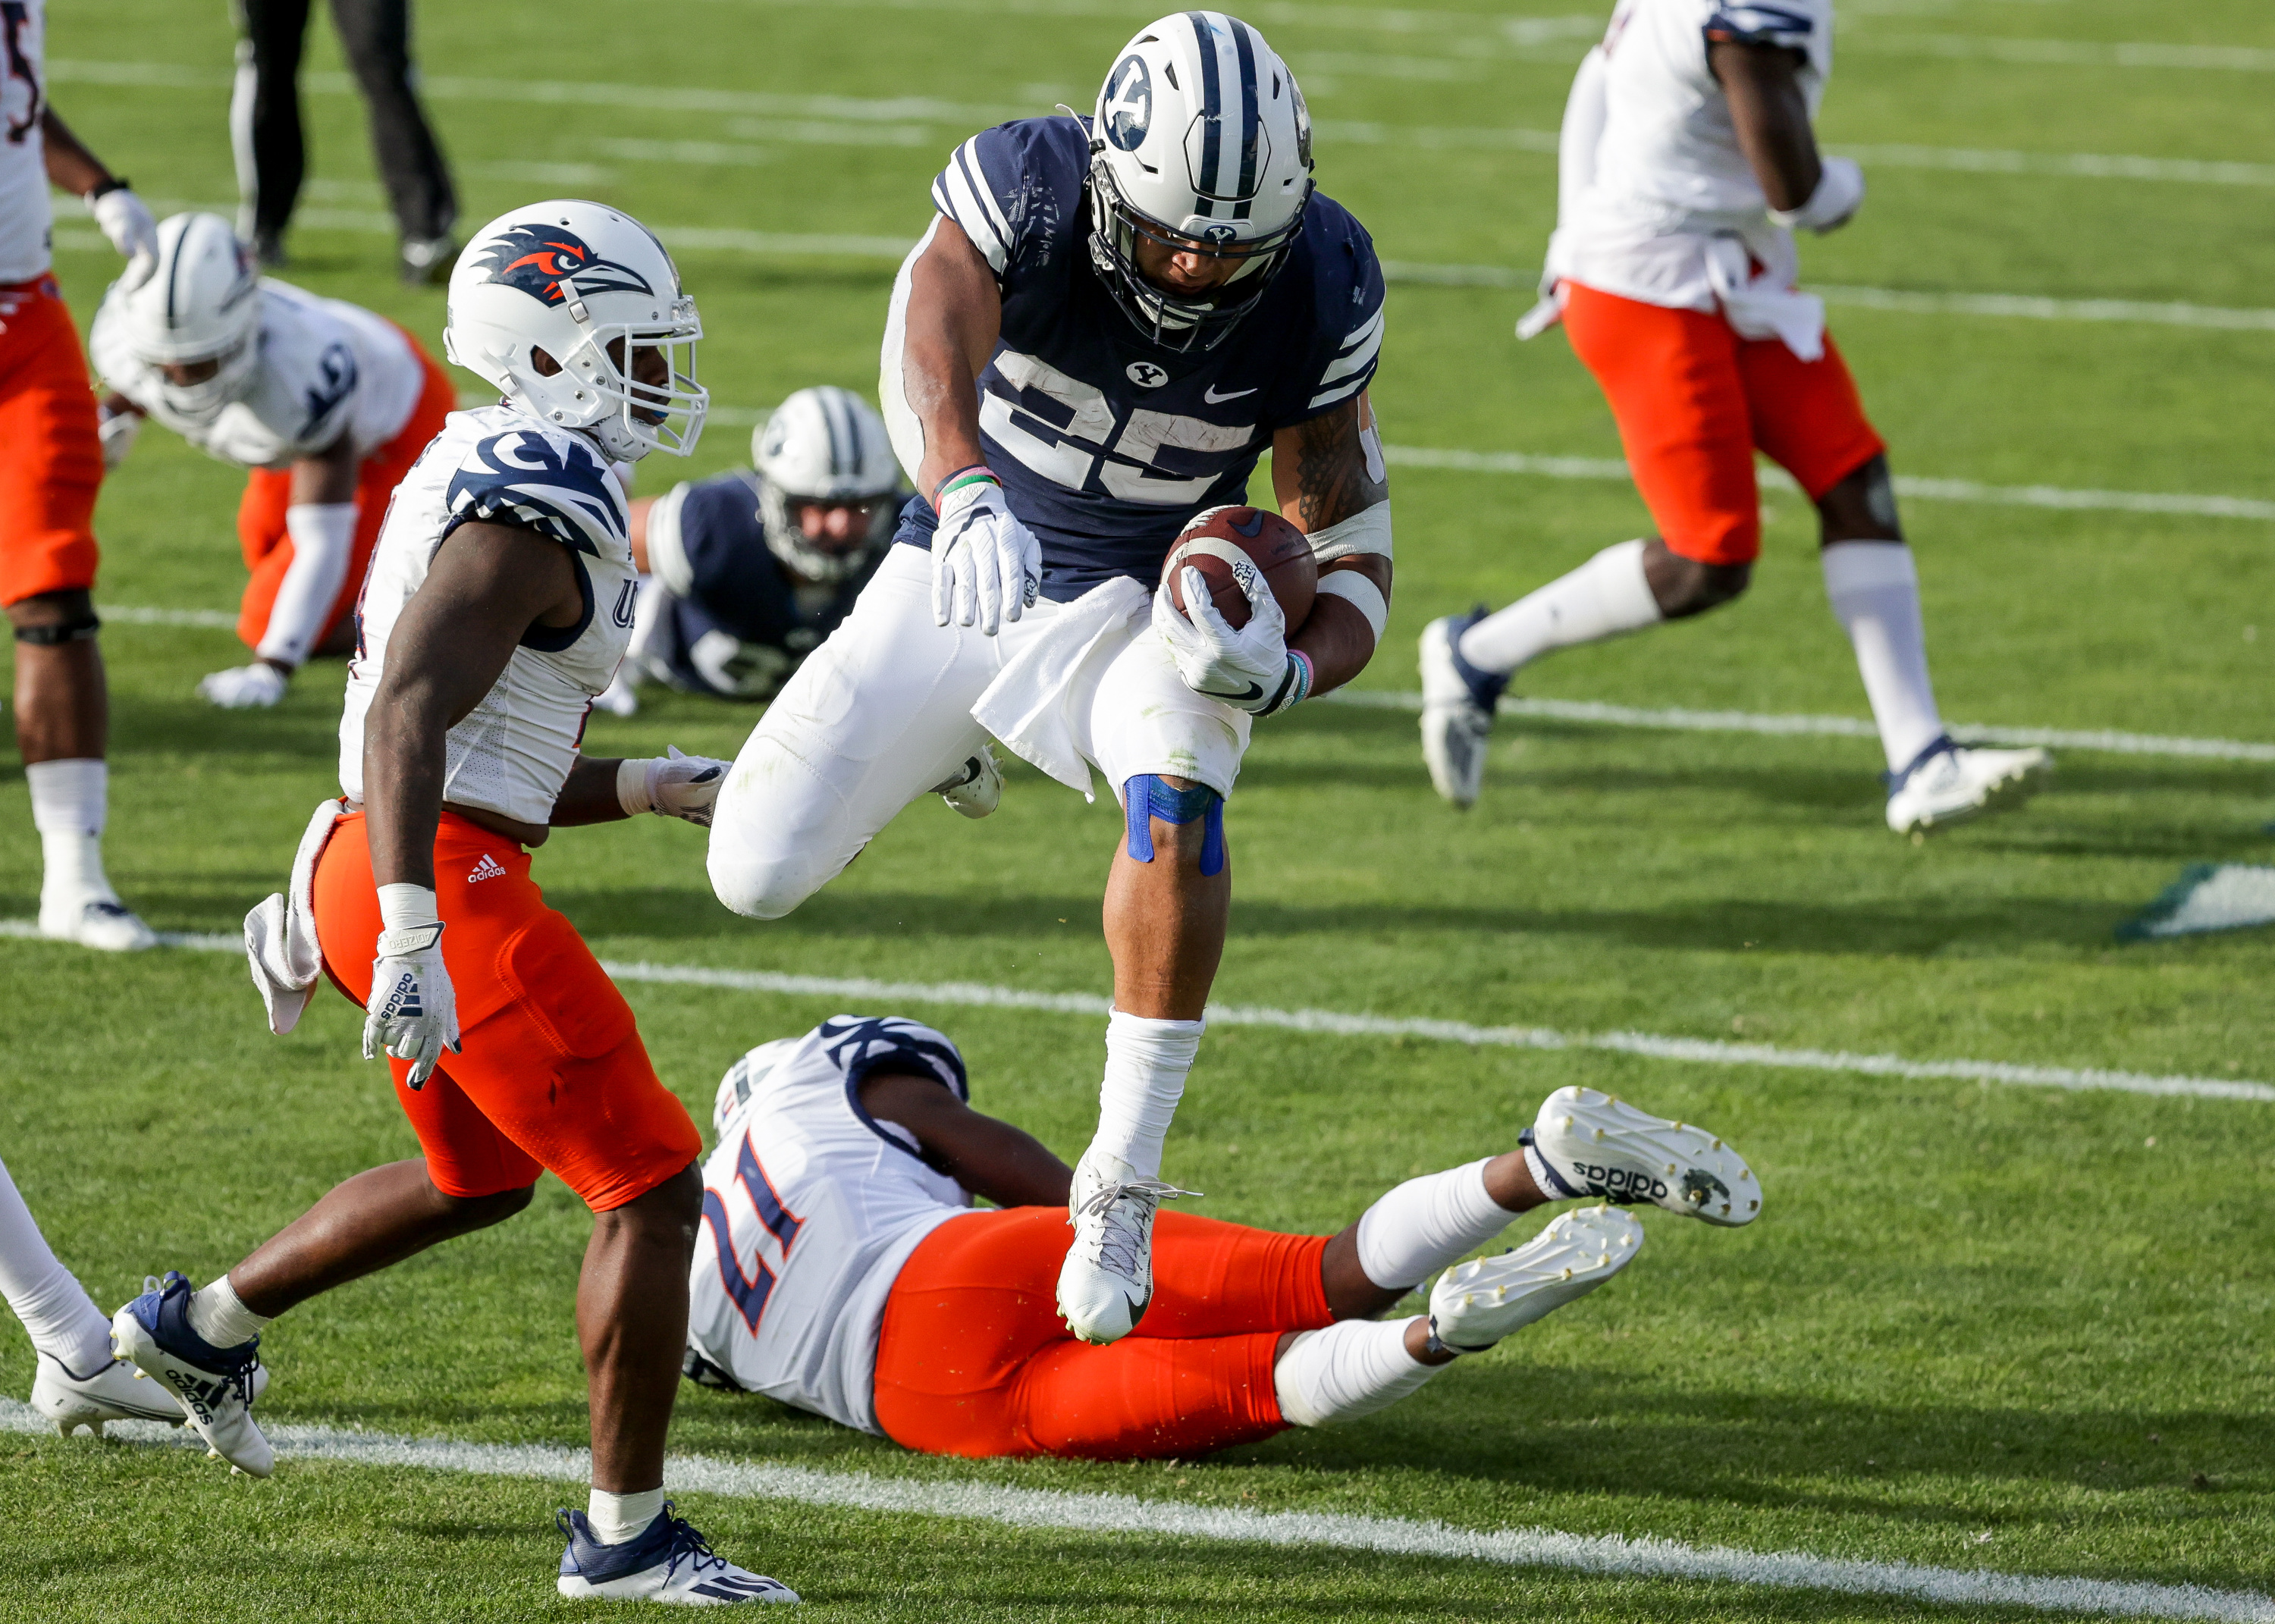 Brigham Young Cougars running back Tyler Allgeier (25) runs into the end zone over UTSA Roadrunners cornerback Ken Robinson (21), giving the Cougars a 27-13 lead after the PAT missed, at LaVell Edwards Stadium in Provo on Saturday, Oct. 10, 2020.